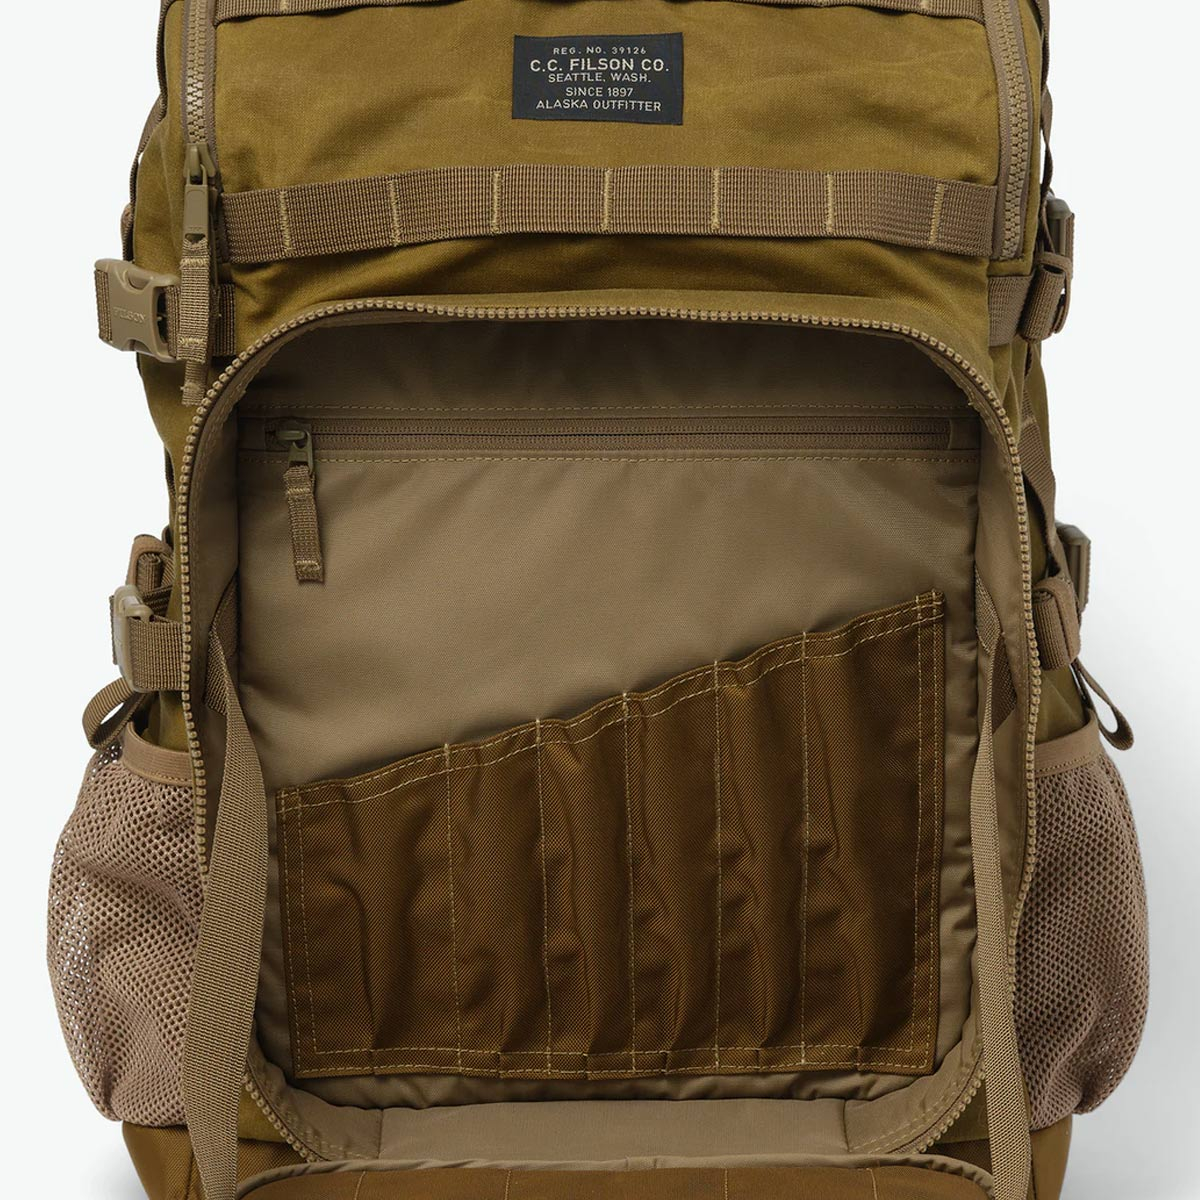 Filson Alcan Tin Cloth Tool Backpack 20167379-Dark Tan, backpack with a large, structured front pocket with internal slots for various-sized tools